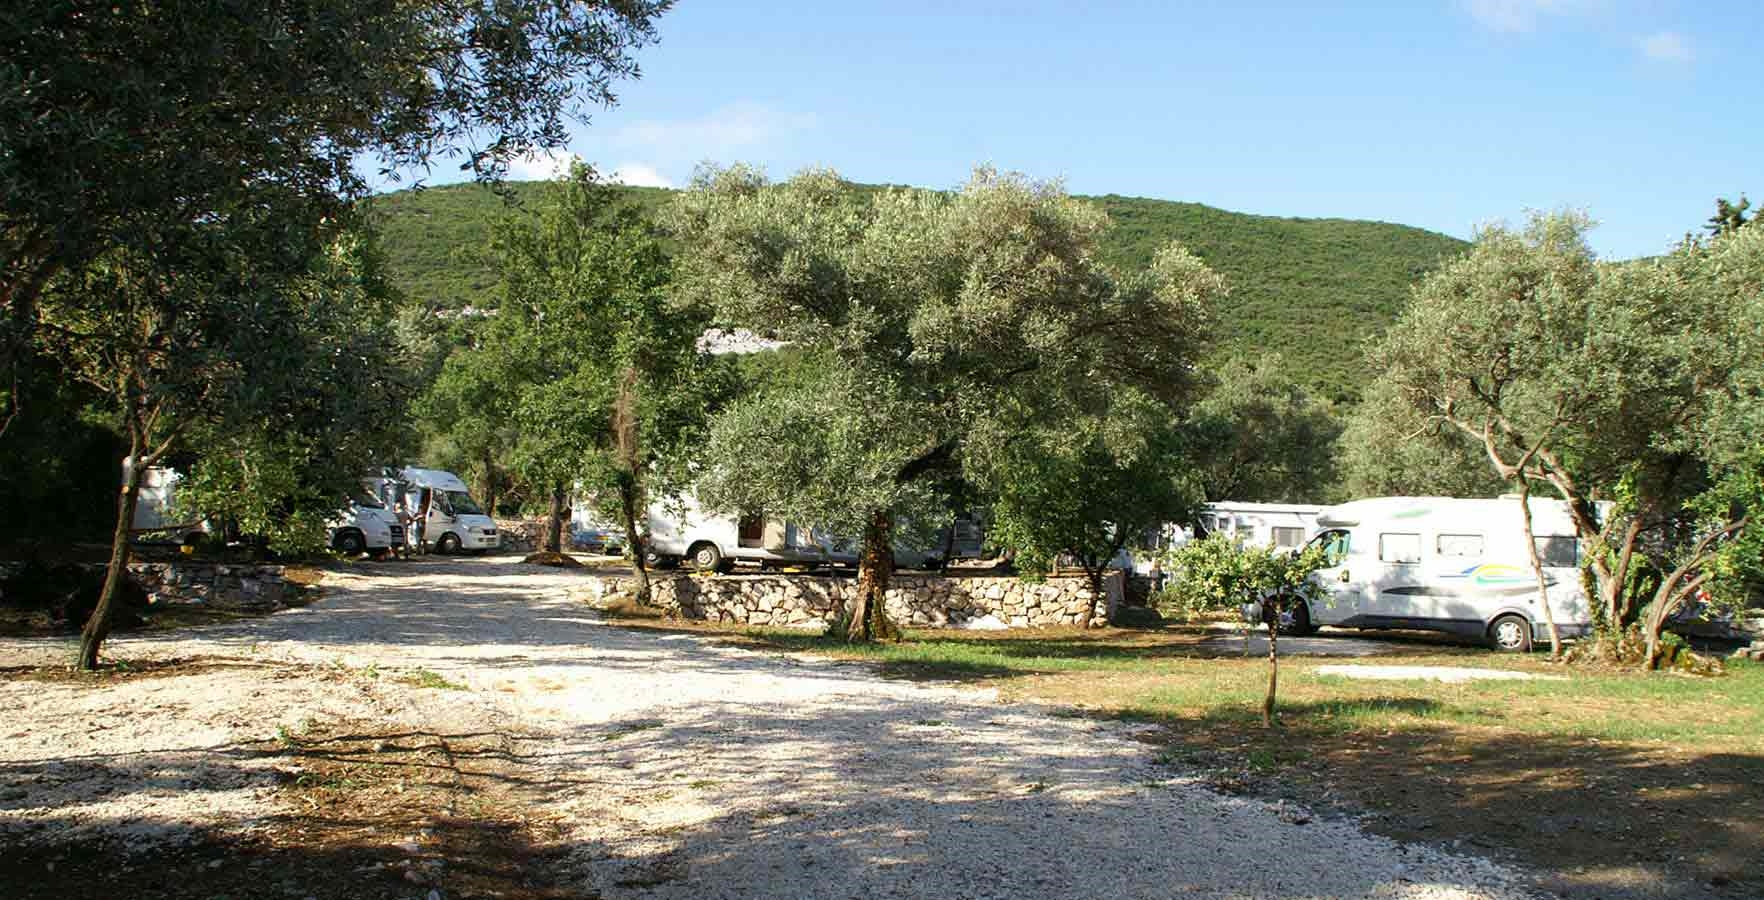 Campsite Zakono - accommodation in Croatia